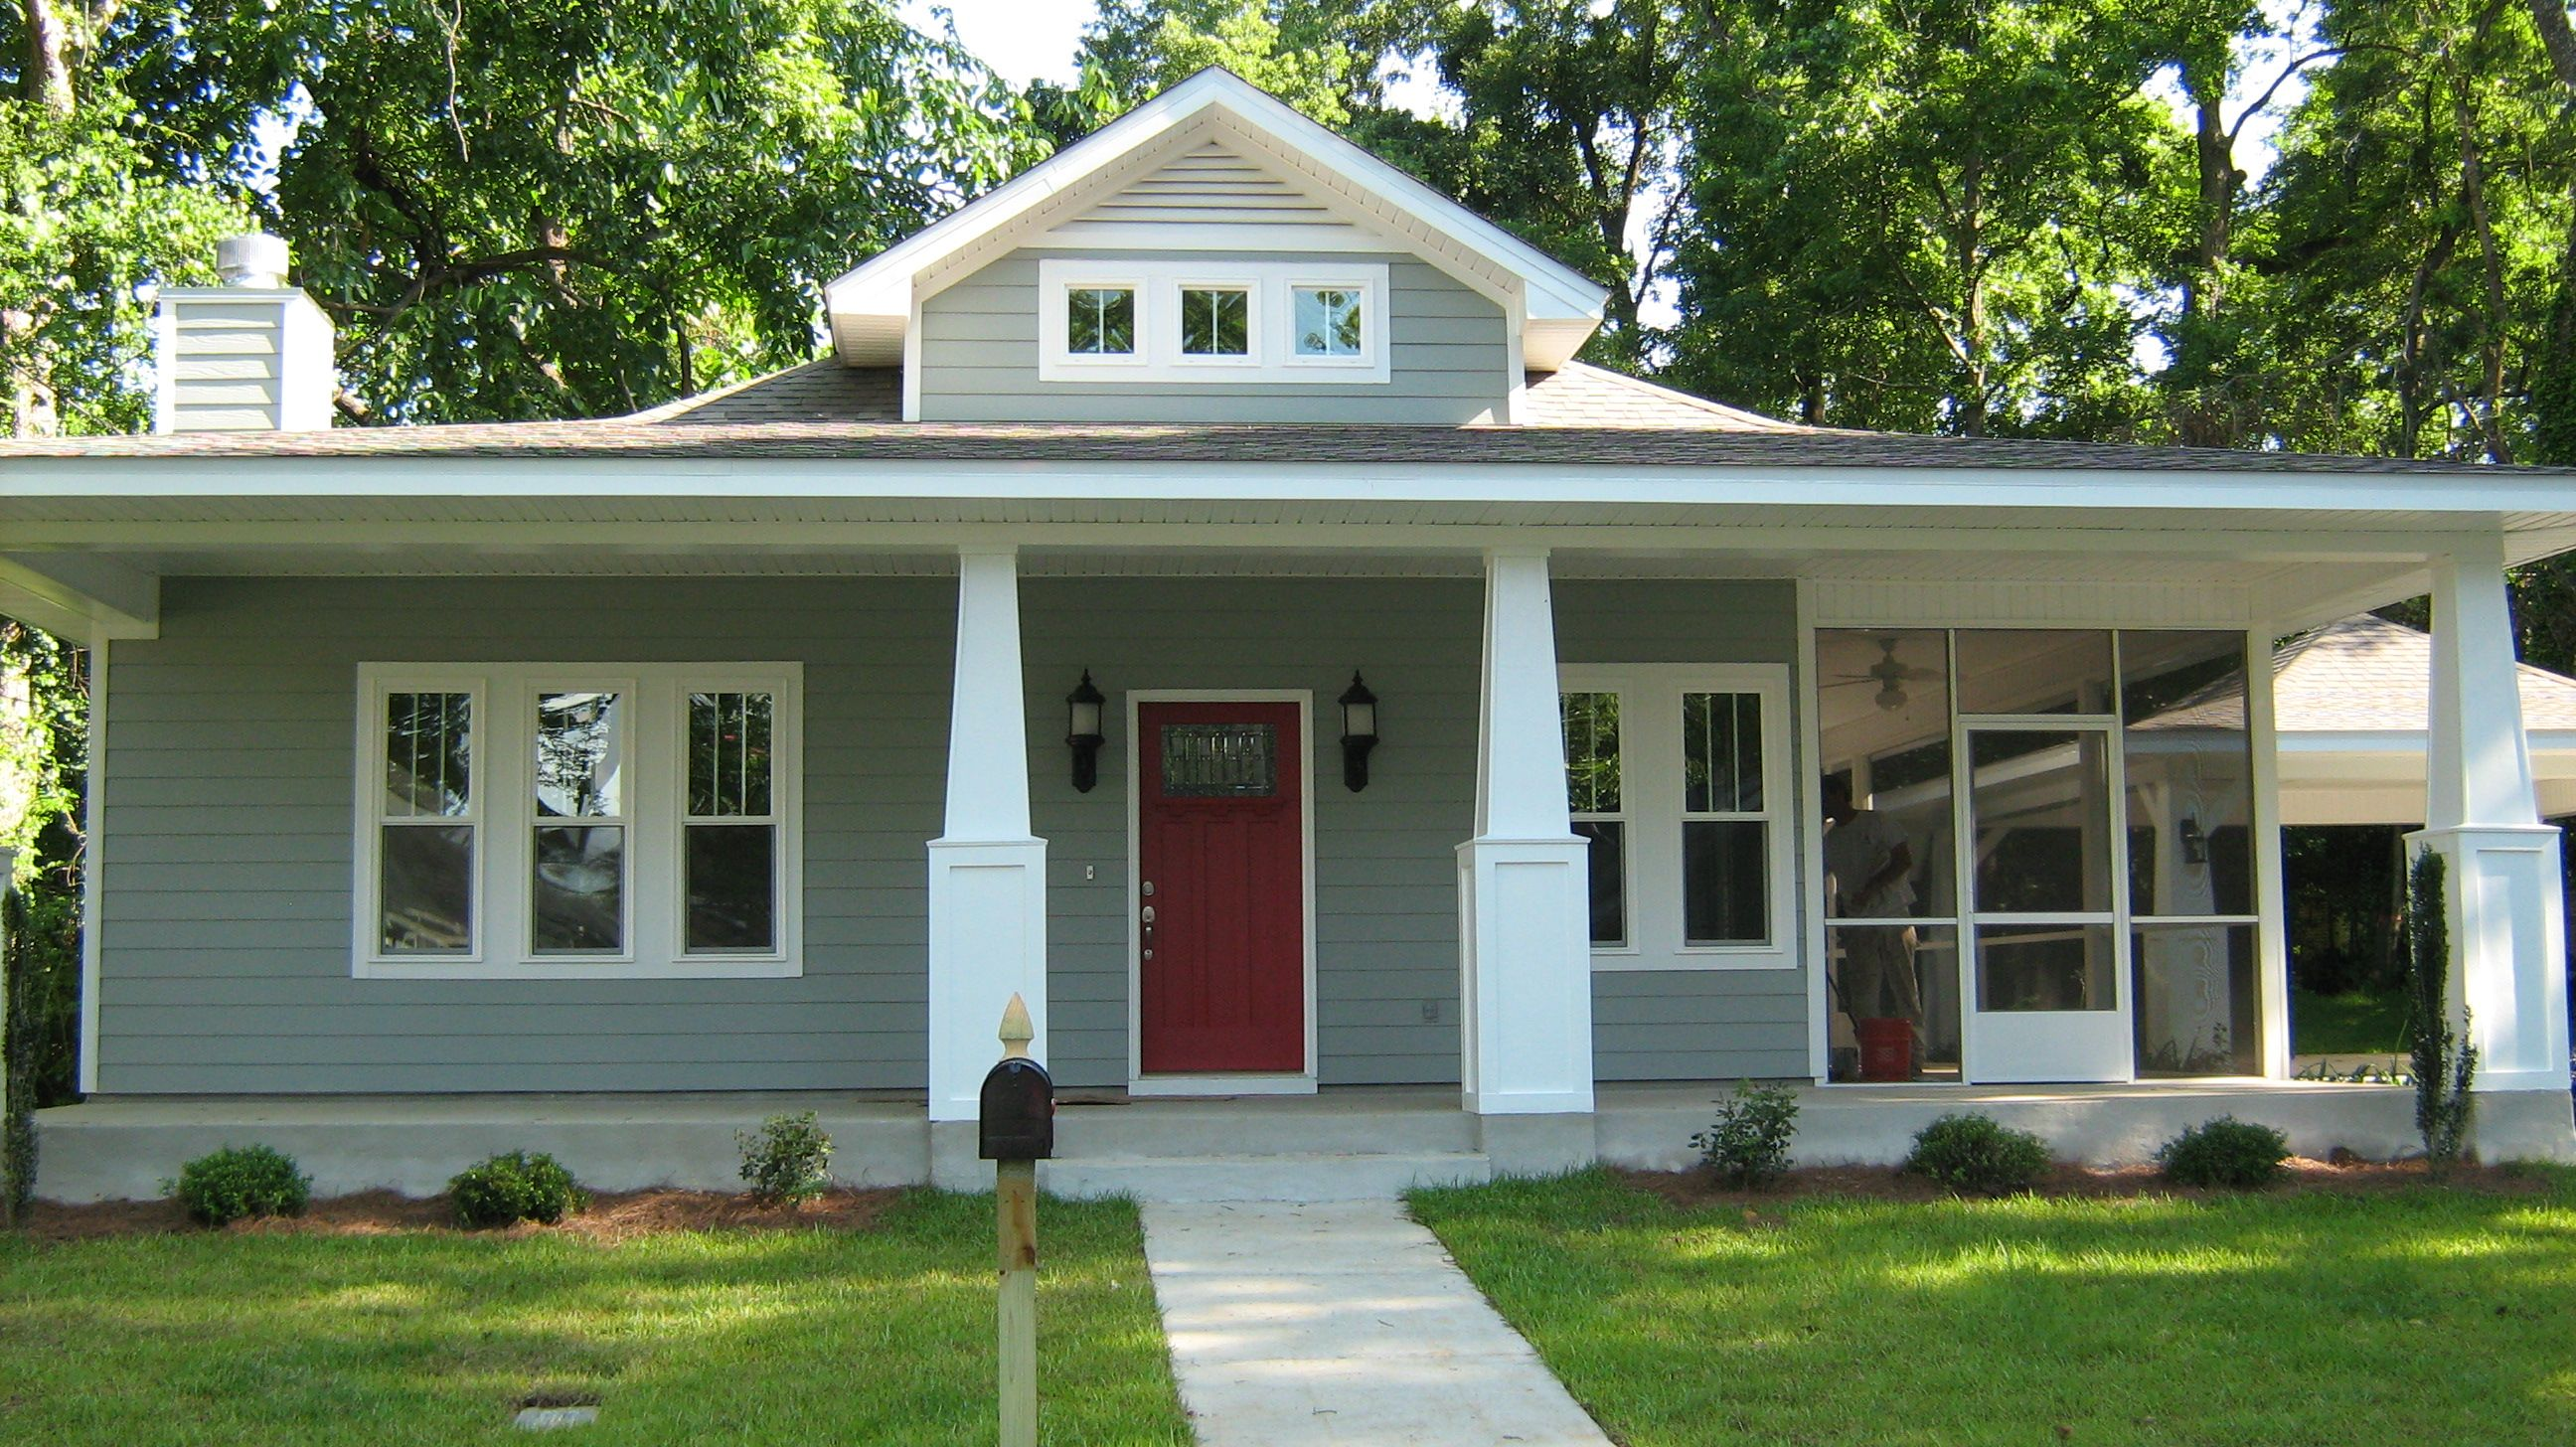 The Barbara 3 Beds 2 Baths 1484 Sq Ft Large Front Porch Spacious Side Screen Porch Op Craftsman House Plans Porch House Plans Craftsman Style House Plans